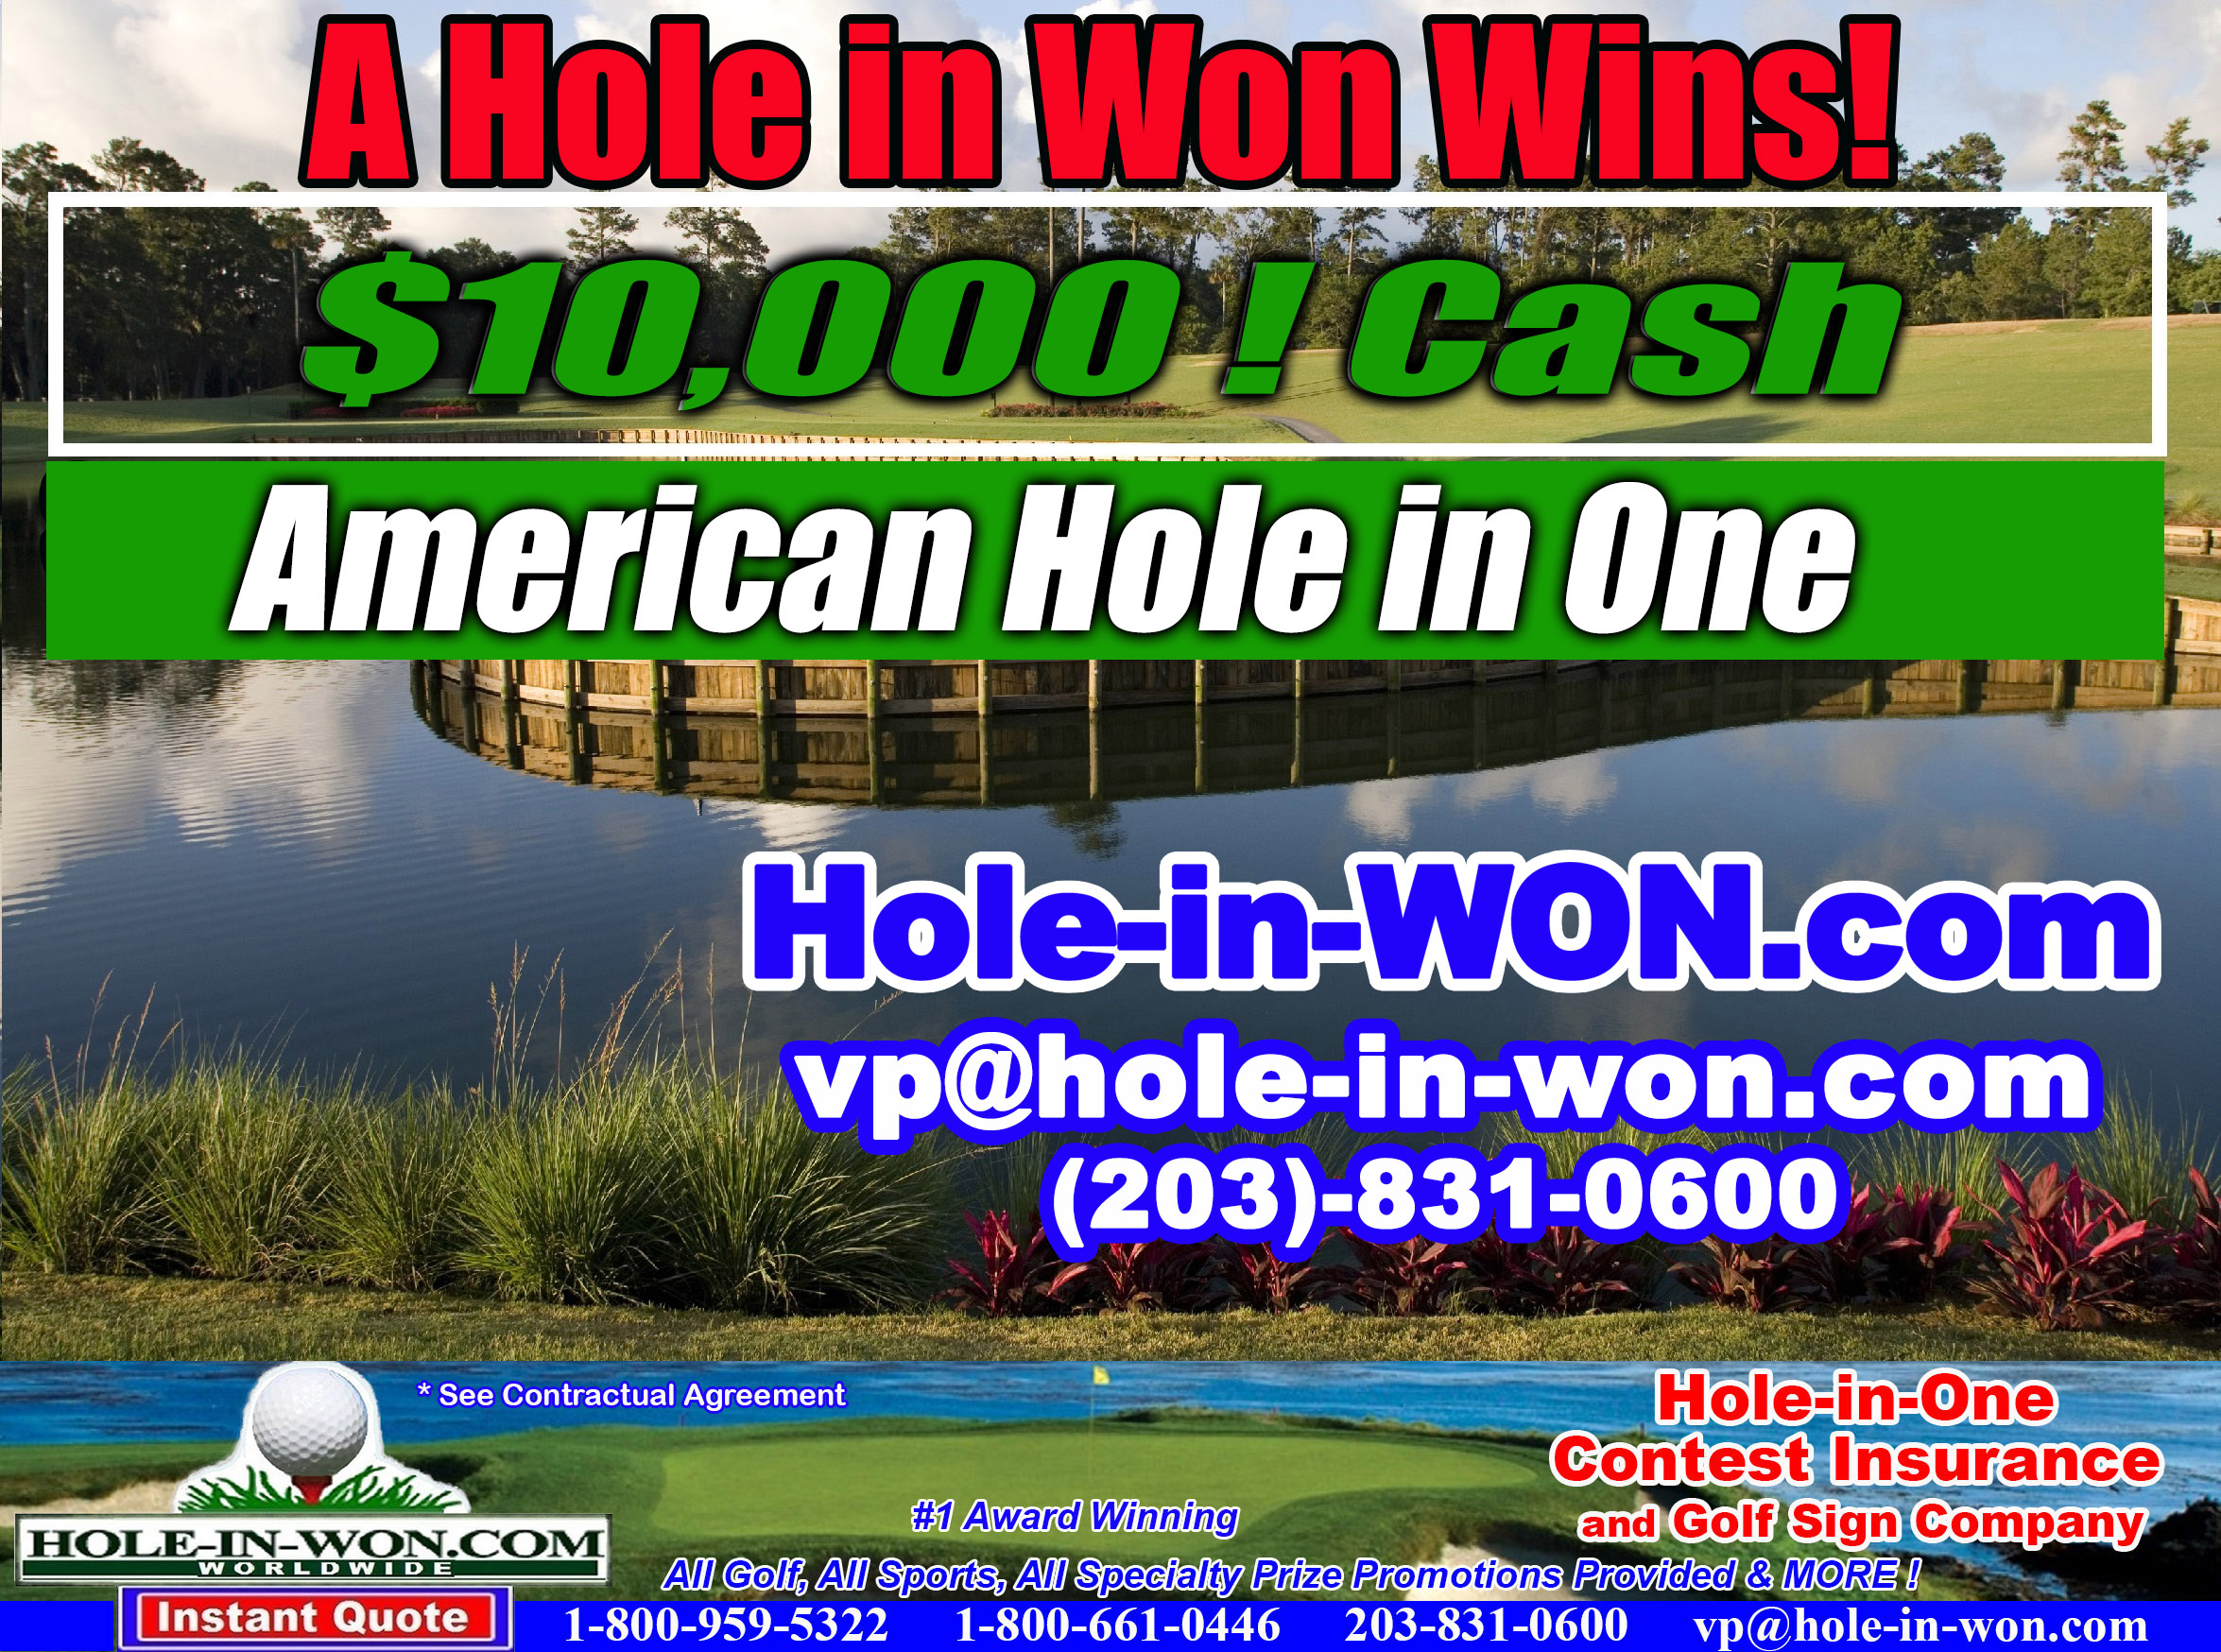 American Hole in One Insurance